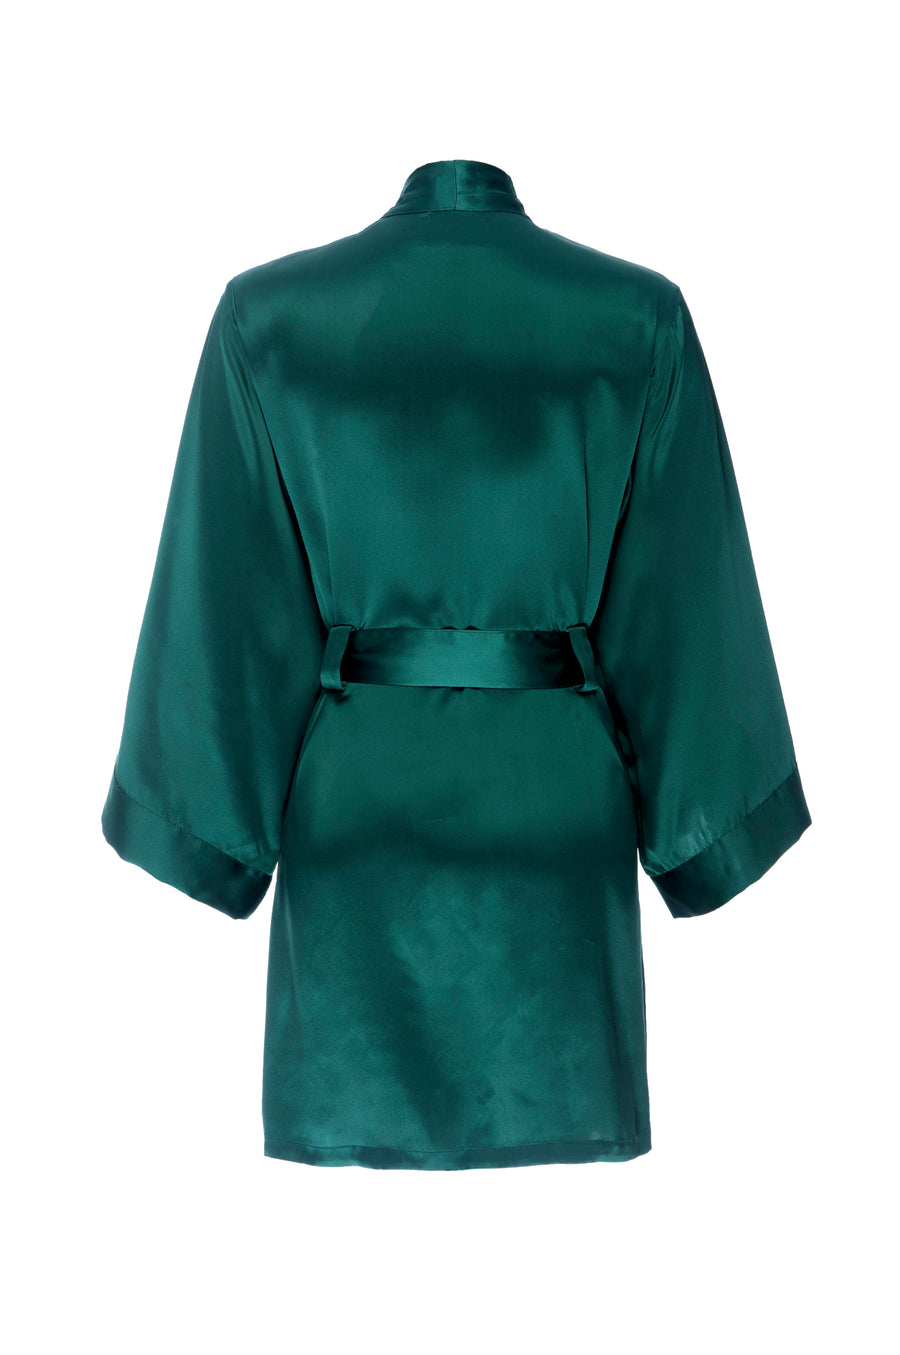 Silk Charmeuse Short Silk Robe: Emerald Green Robe